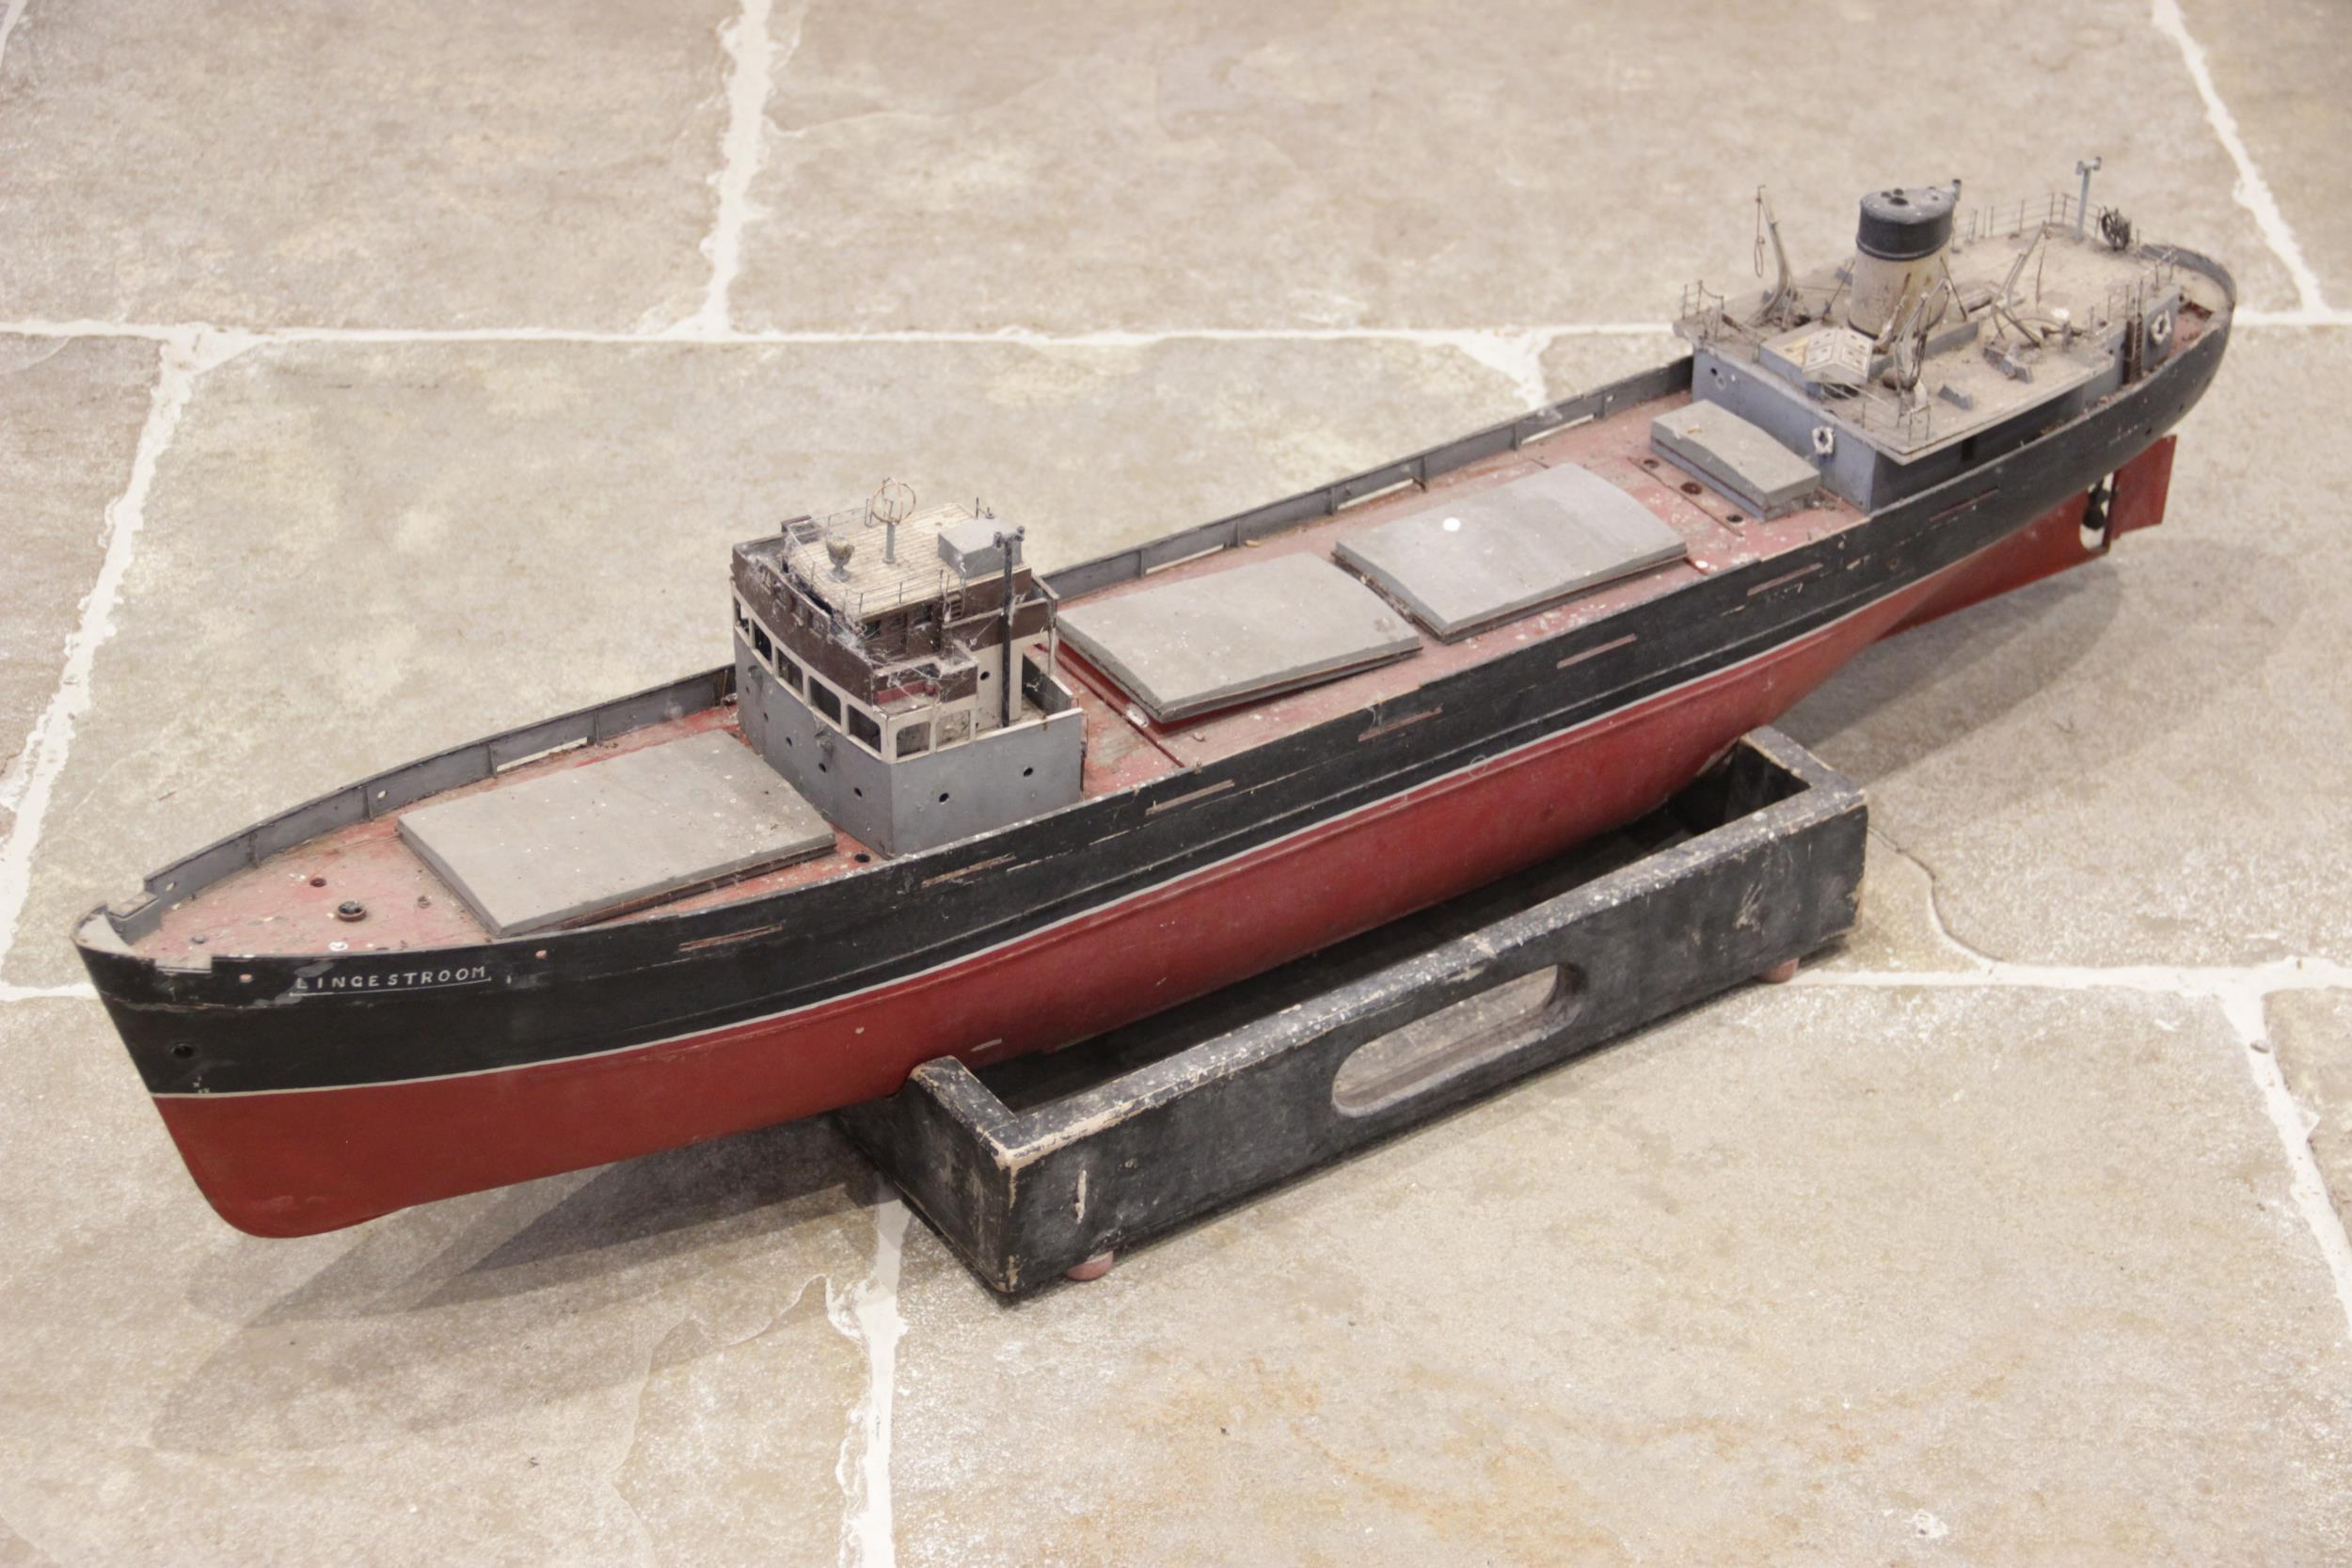 A mid 20th century scratch built model of the cargo ship 'Lingestroom', a scale recreation of an - Image 2 of 2